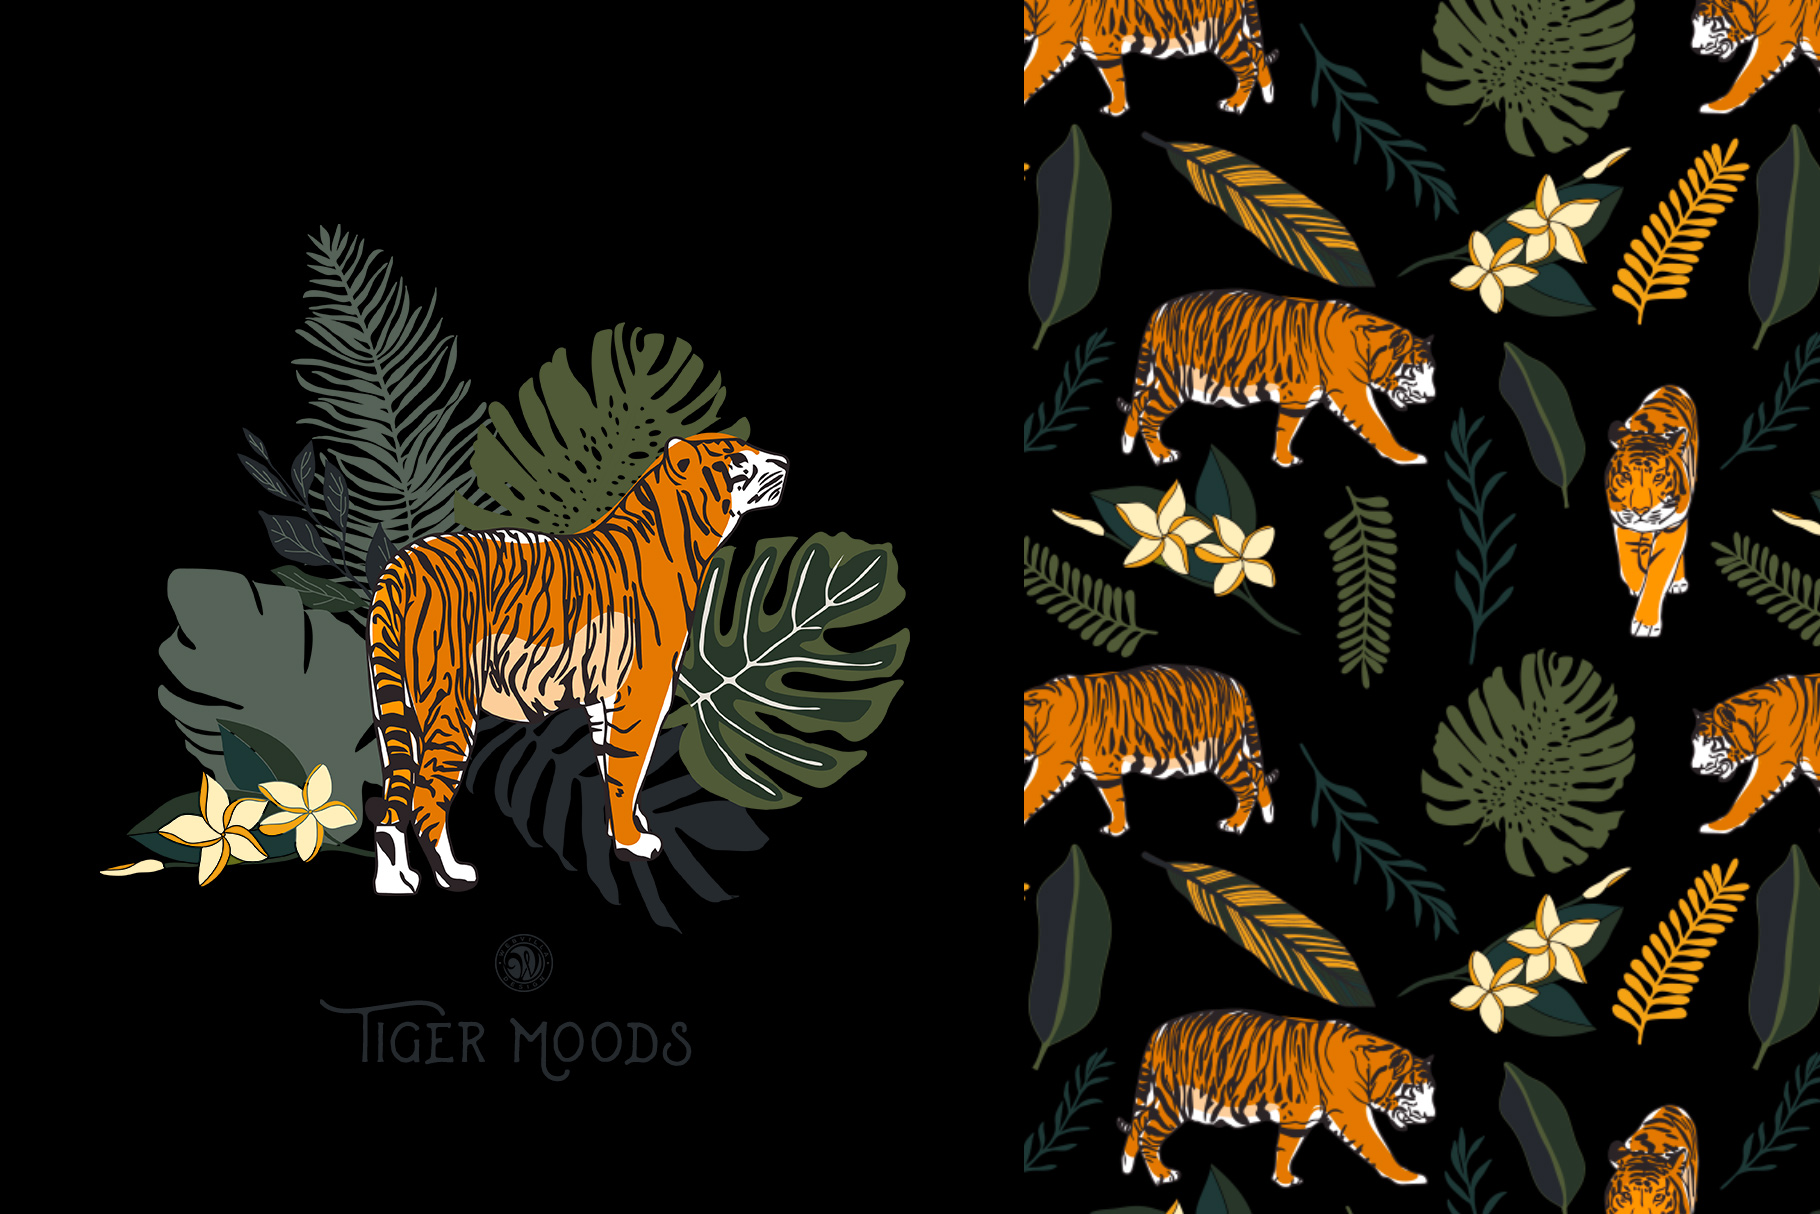 Tiger Moods example image 5